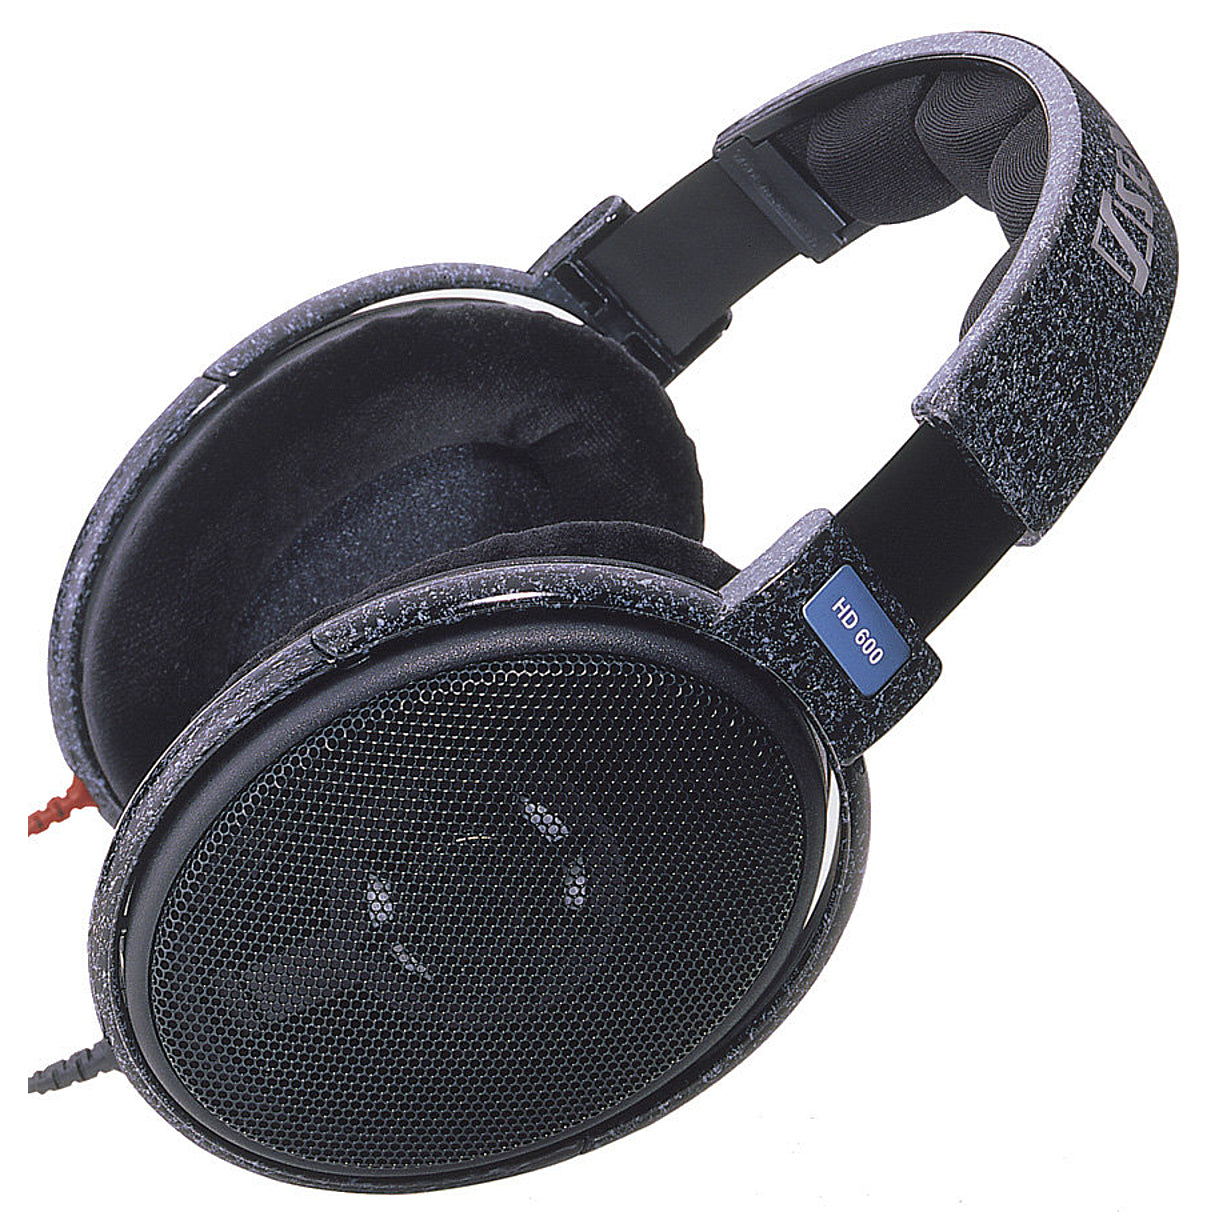 Sennheiser HD600 Full-Sized Circumaural Headphones